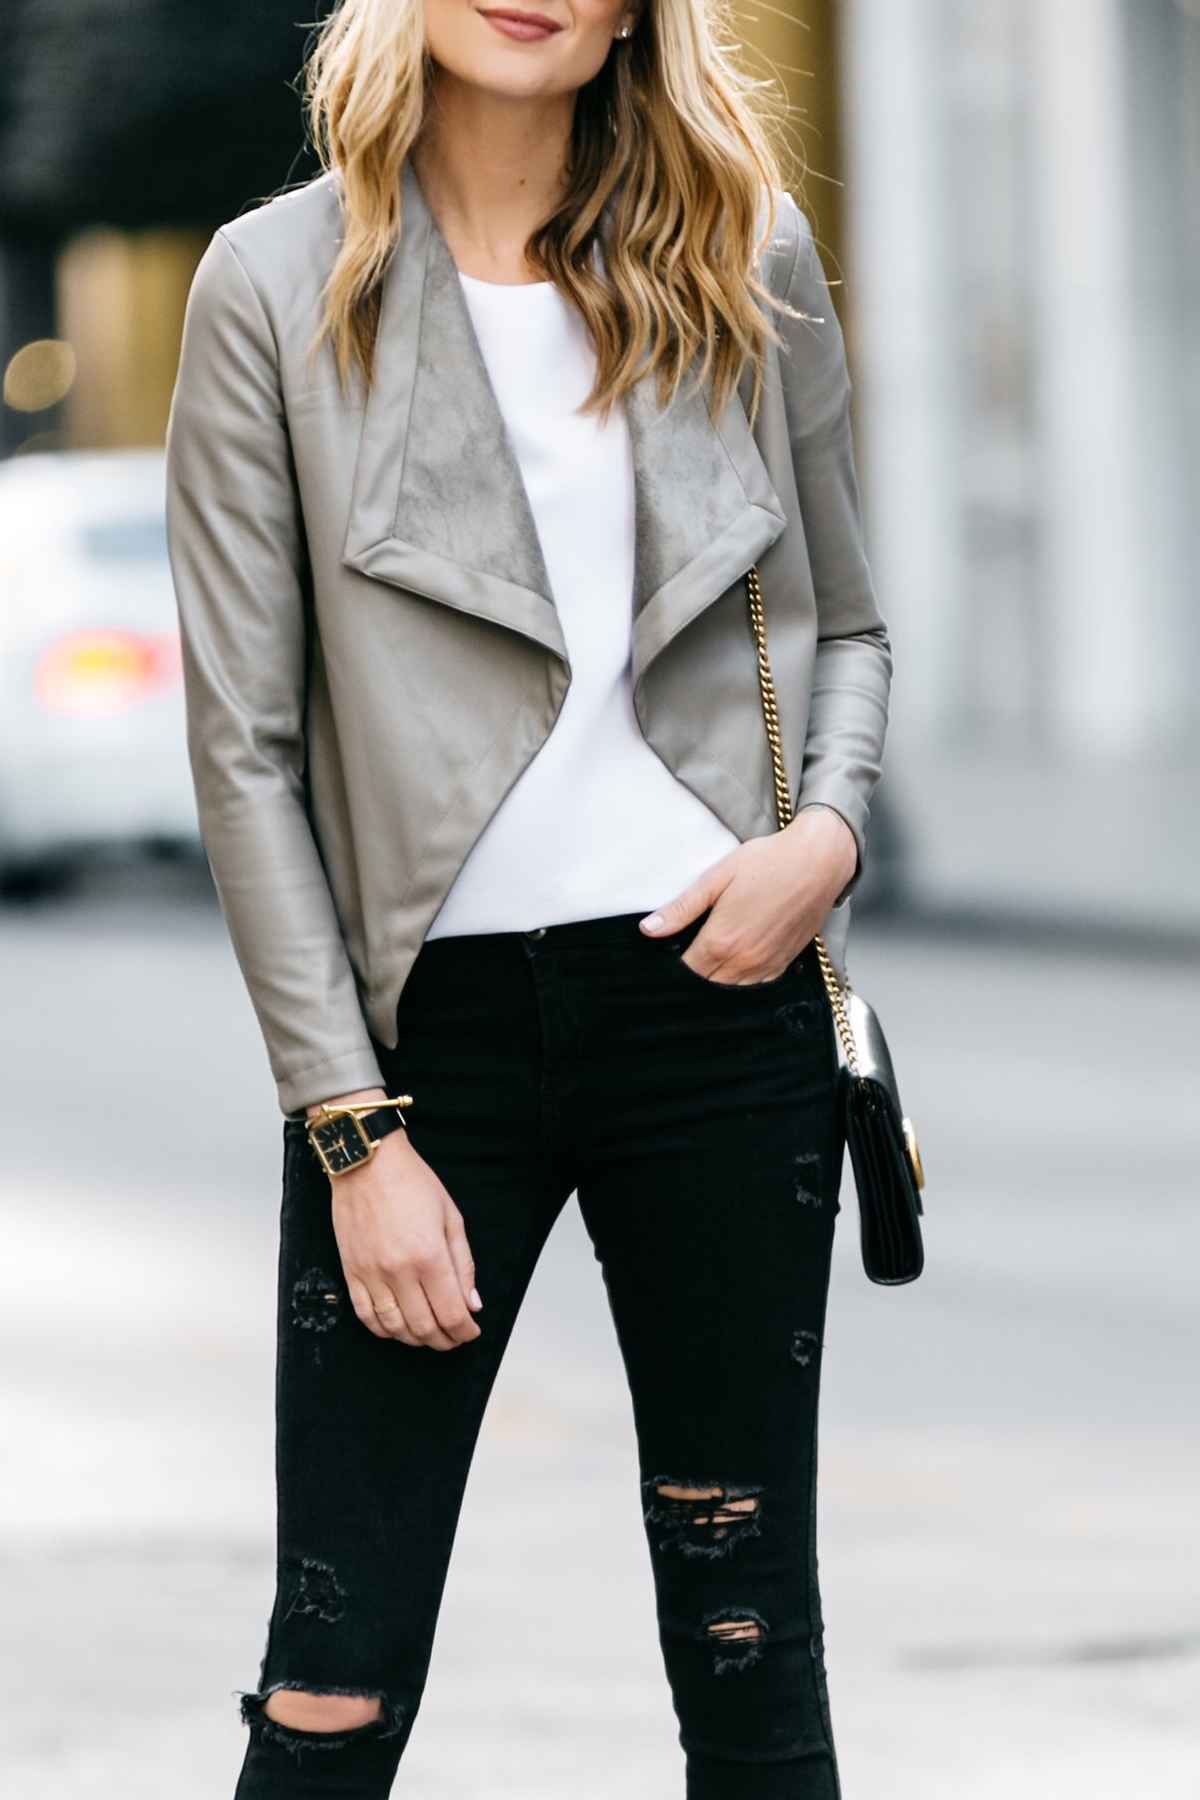 Fashion Jackson, Dallas Blogger, Fashion Blogger, Street Style, BB Dakota Peppin Jacket, White Top, Black Ripped Skinny Jeans